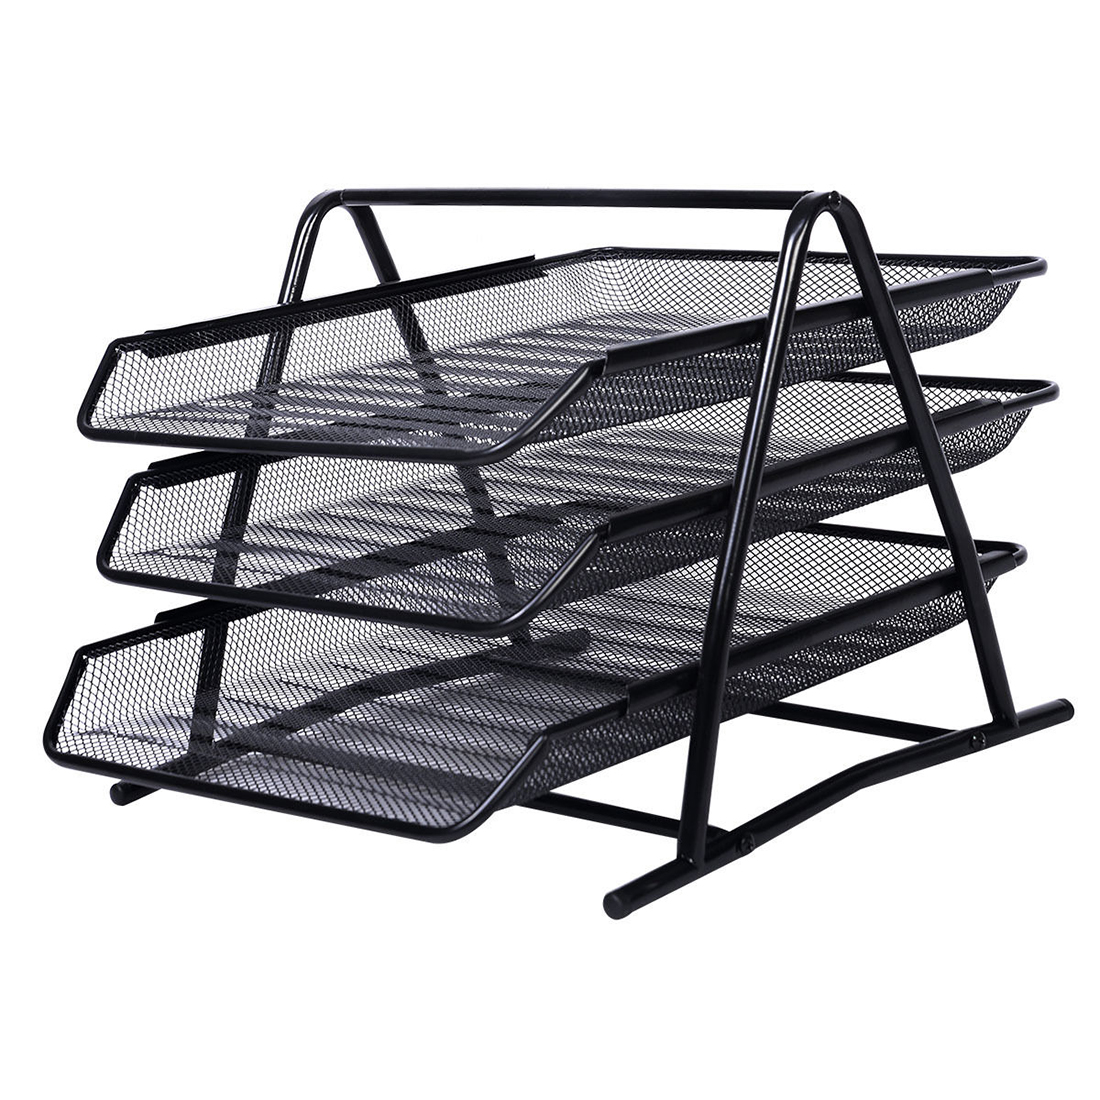 Affordable Office Filing Trays Holder A4 Document Letter Paper Wire ...